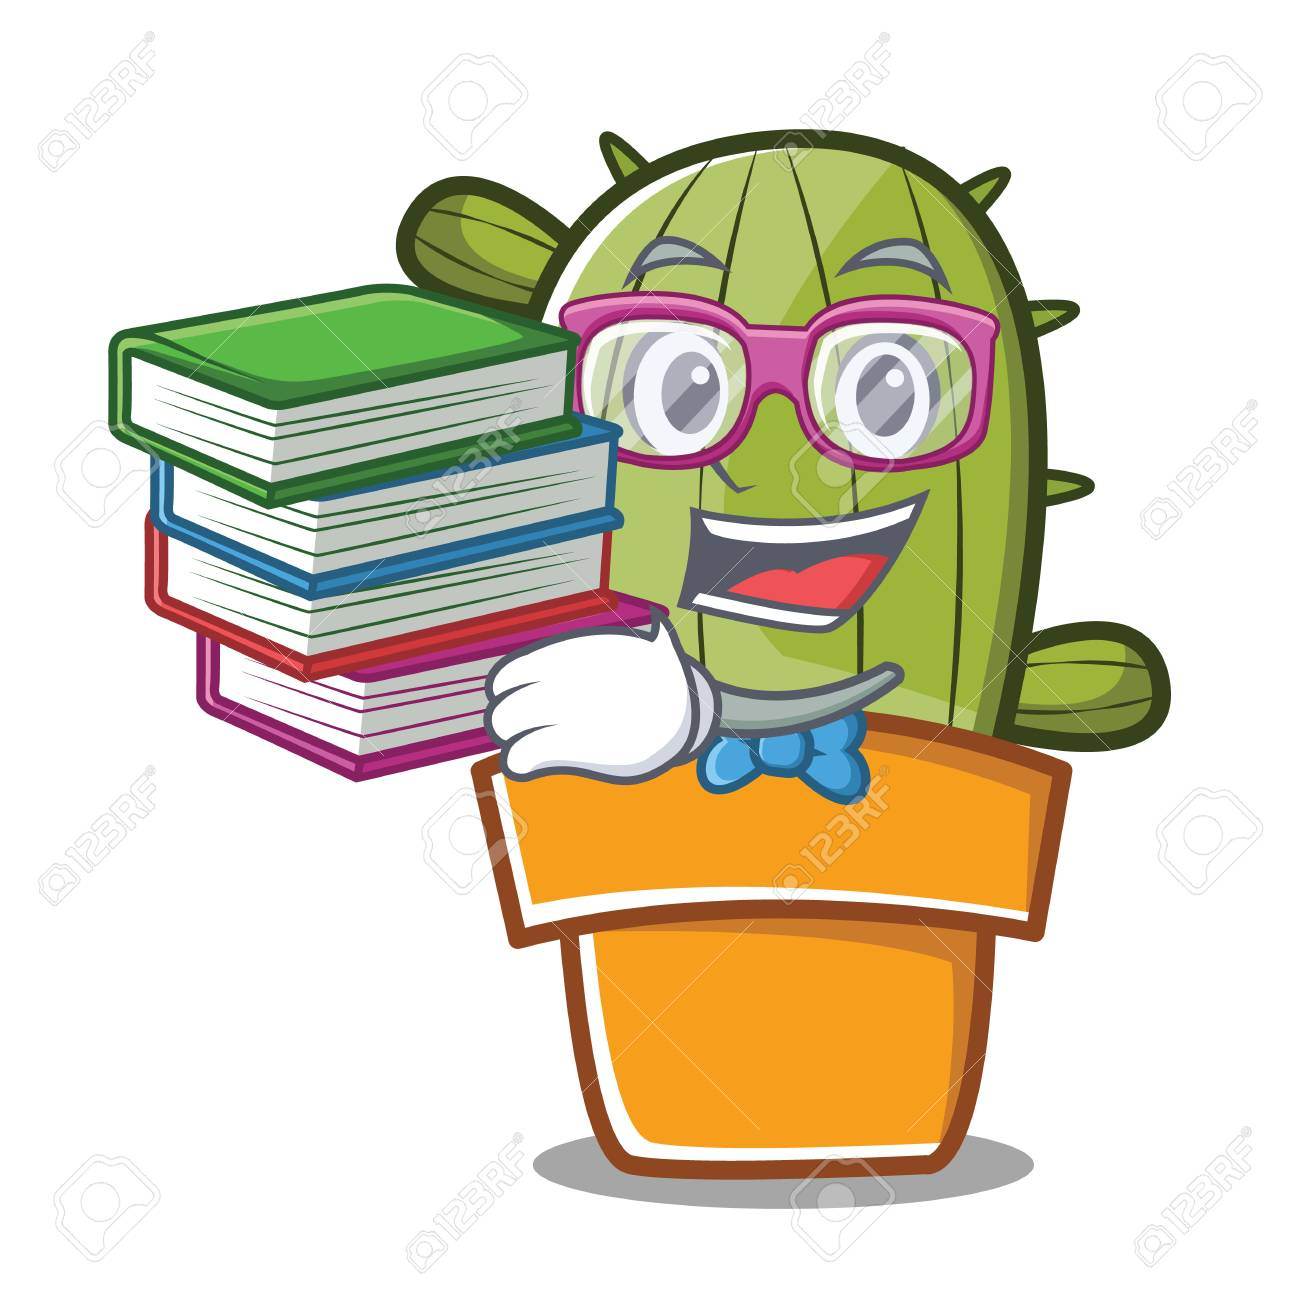 Student With Book Cute Cactus Character Cartoon Royalty Free Cliparts,  Vectors, And Stock Illustration. Image 87286911.